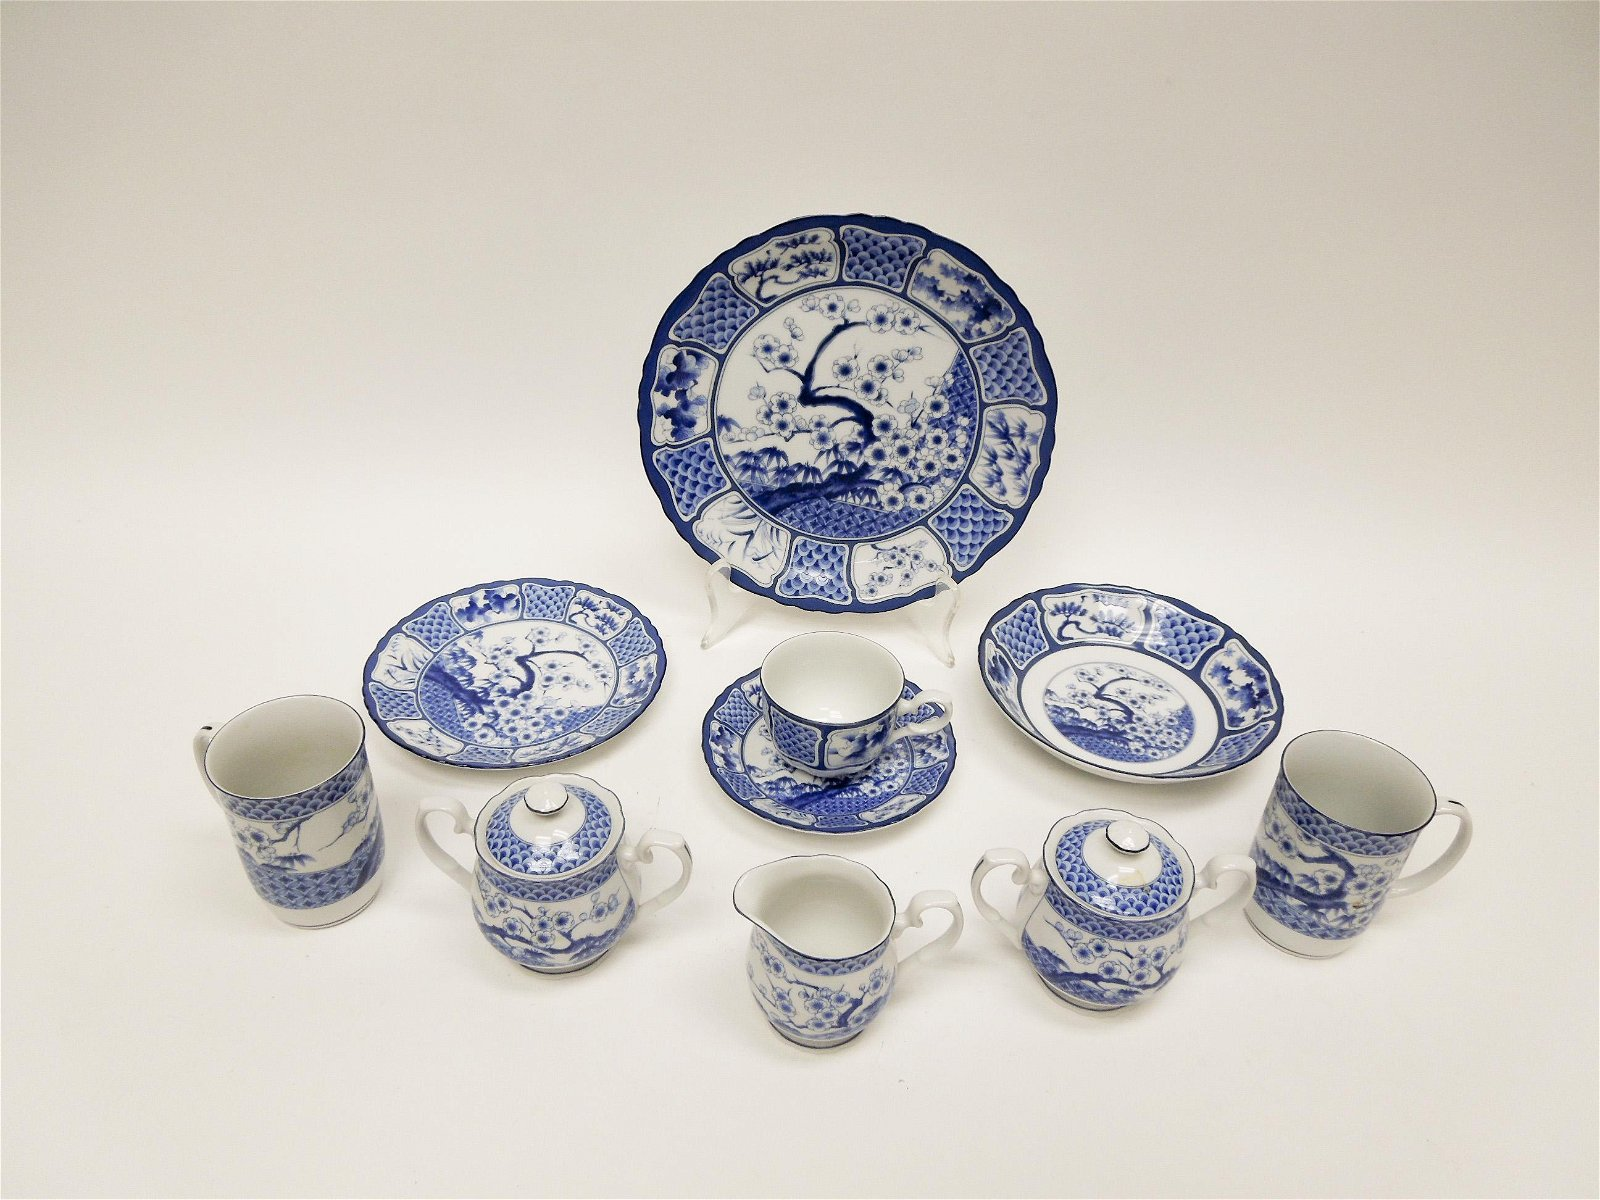 Gumps Japanese Porcelain Dinner Service.